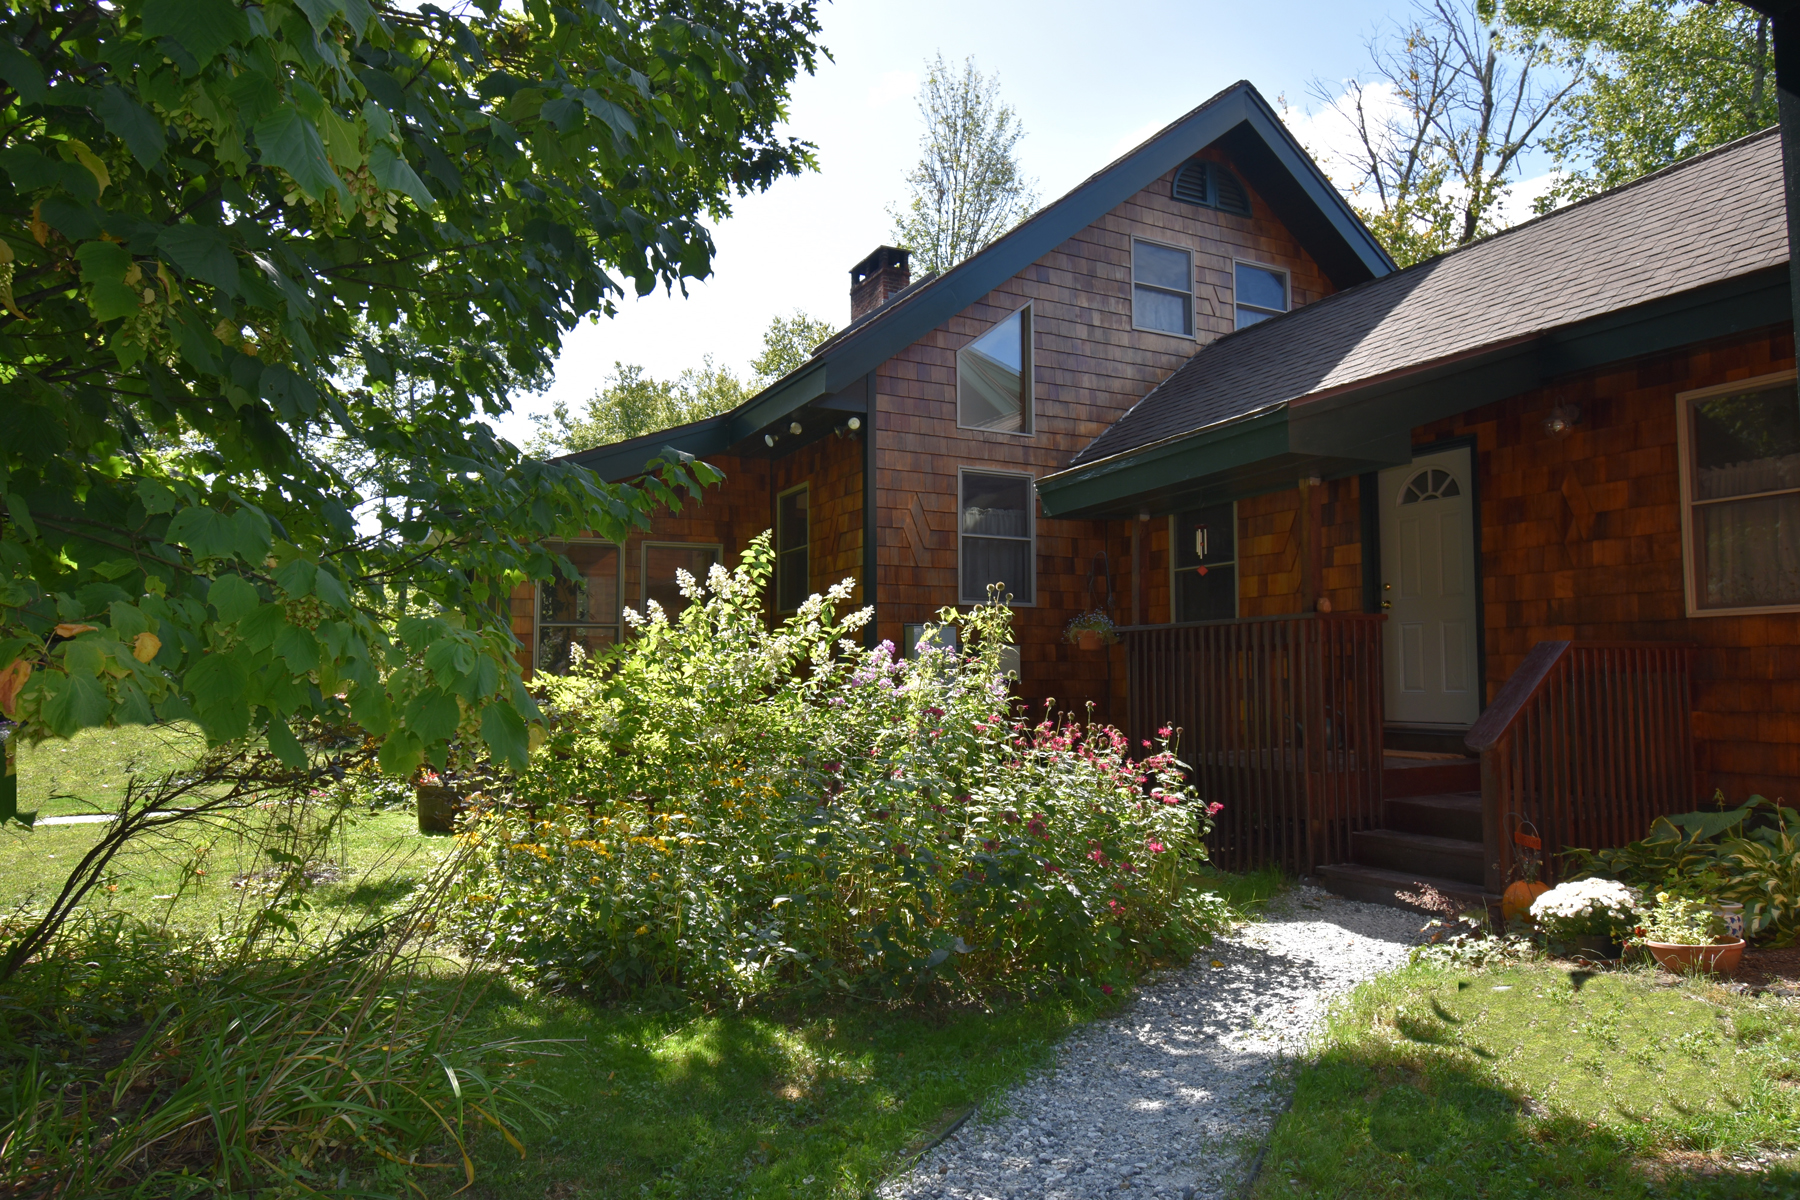 Single Family Homes for Sale at All Things Bright and Beautiful 120 Trout Brook Rd Pittsford, Vermont 05763 United States